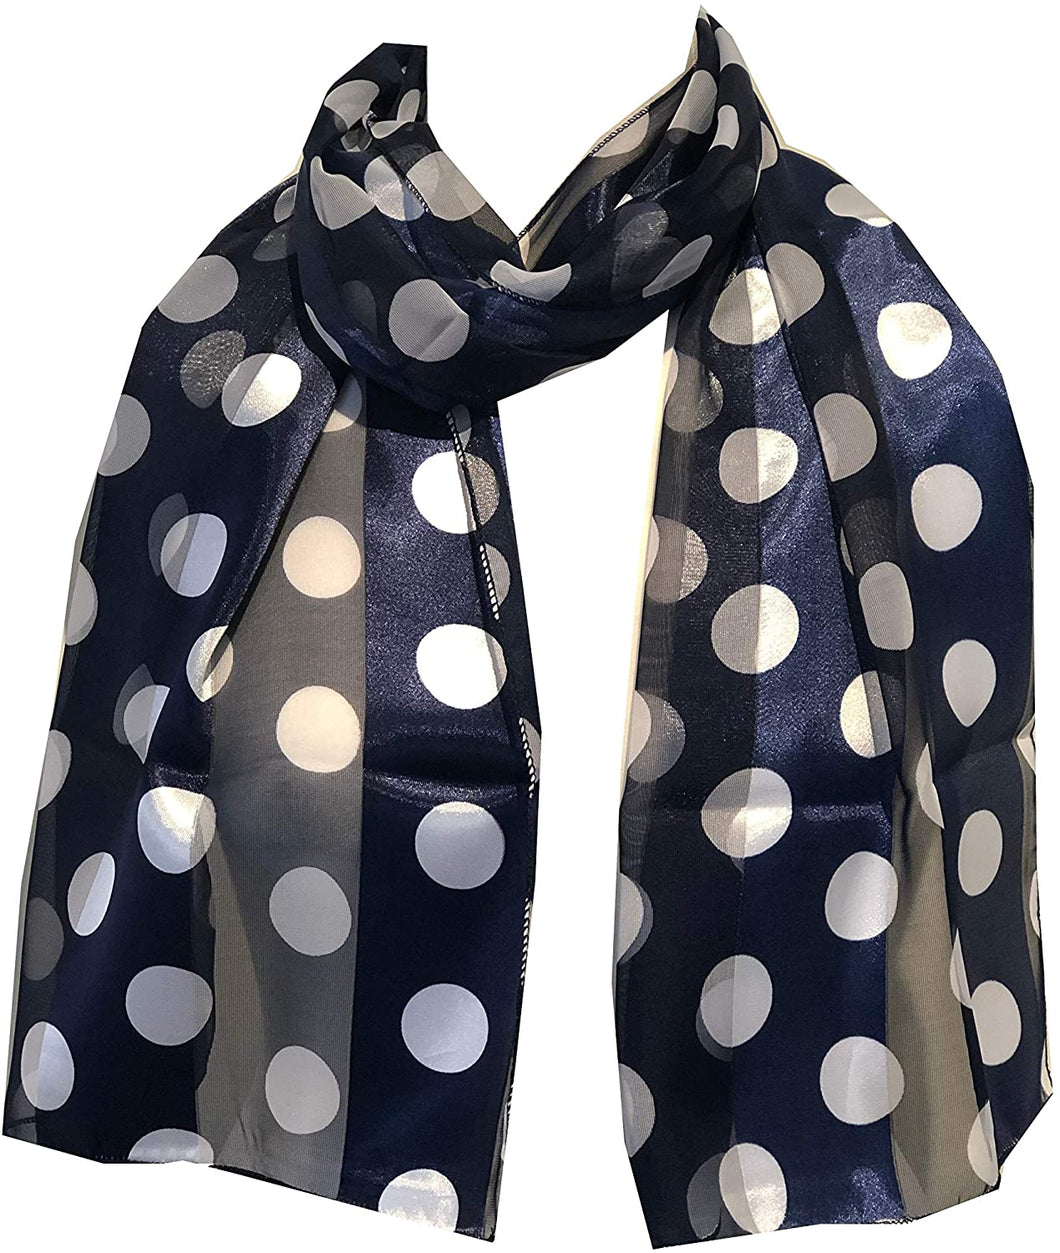 Navy with White Big spot Thin Pretty Scarf. Lovely with Any Outfit. 50's Style Scarf